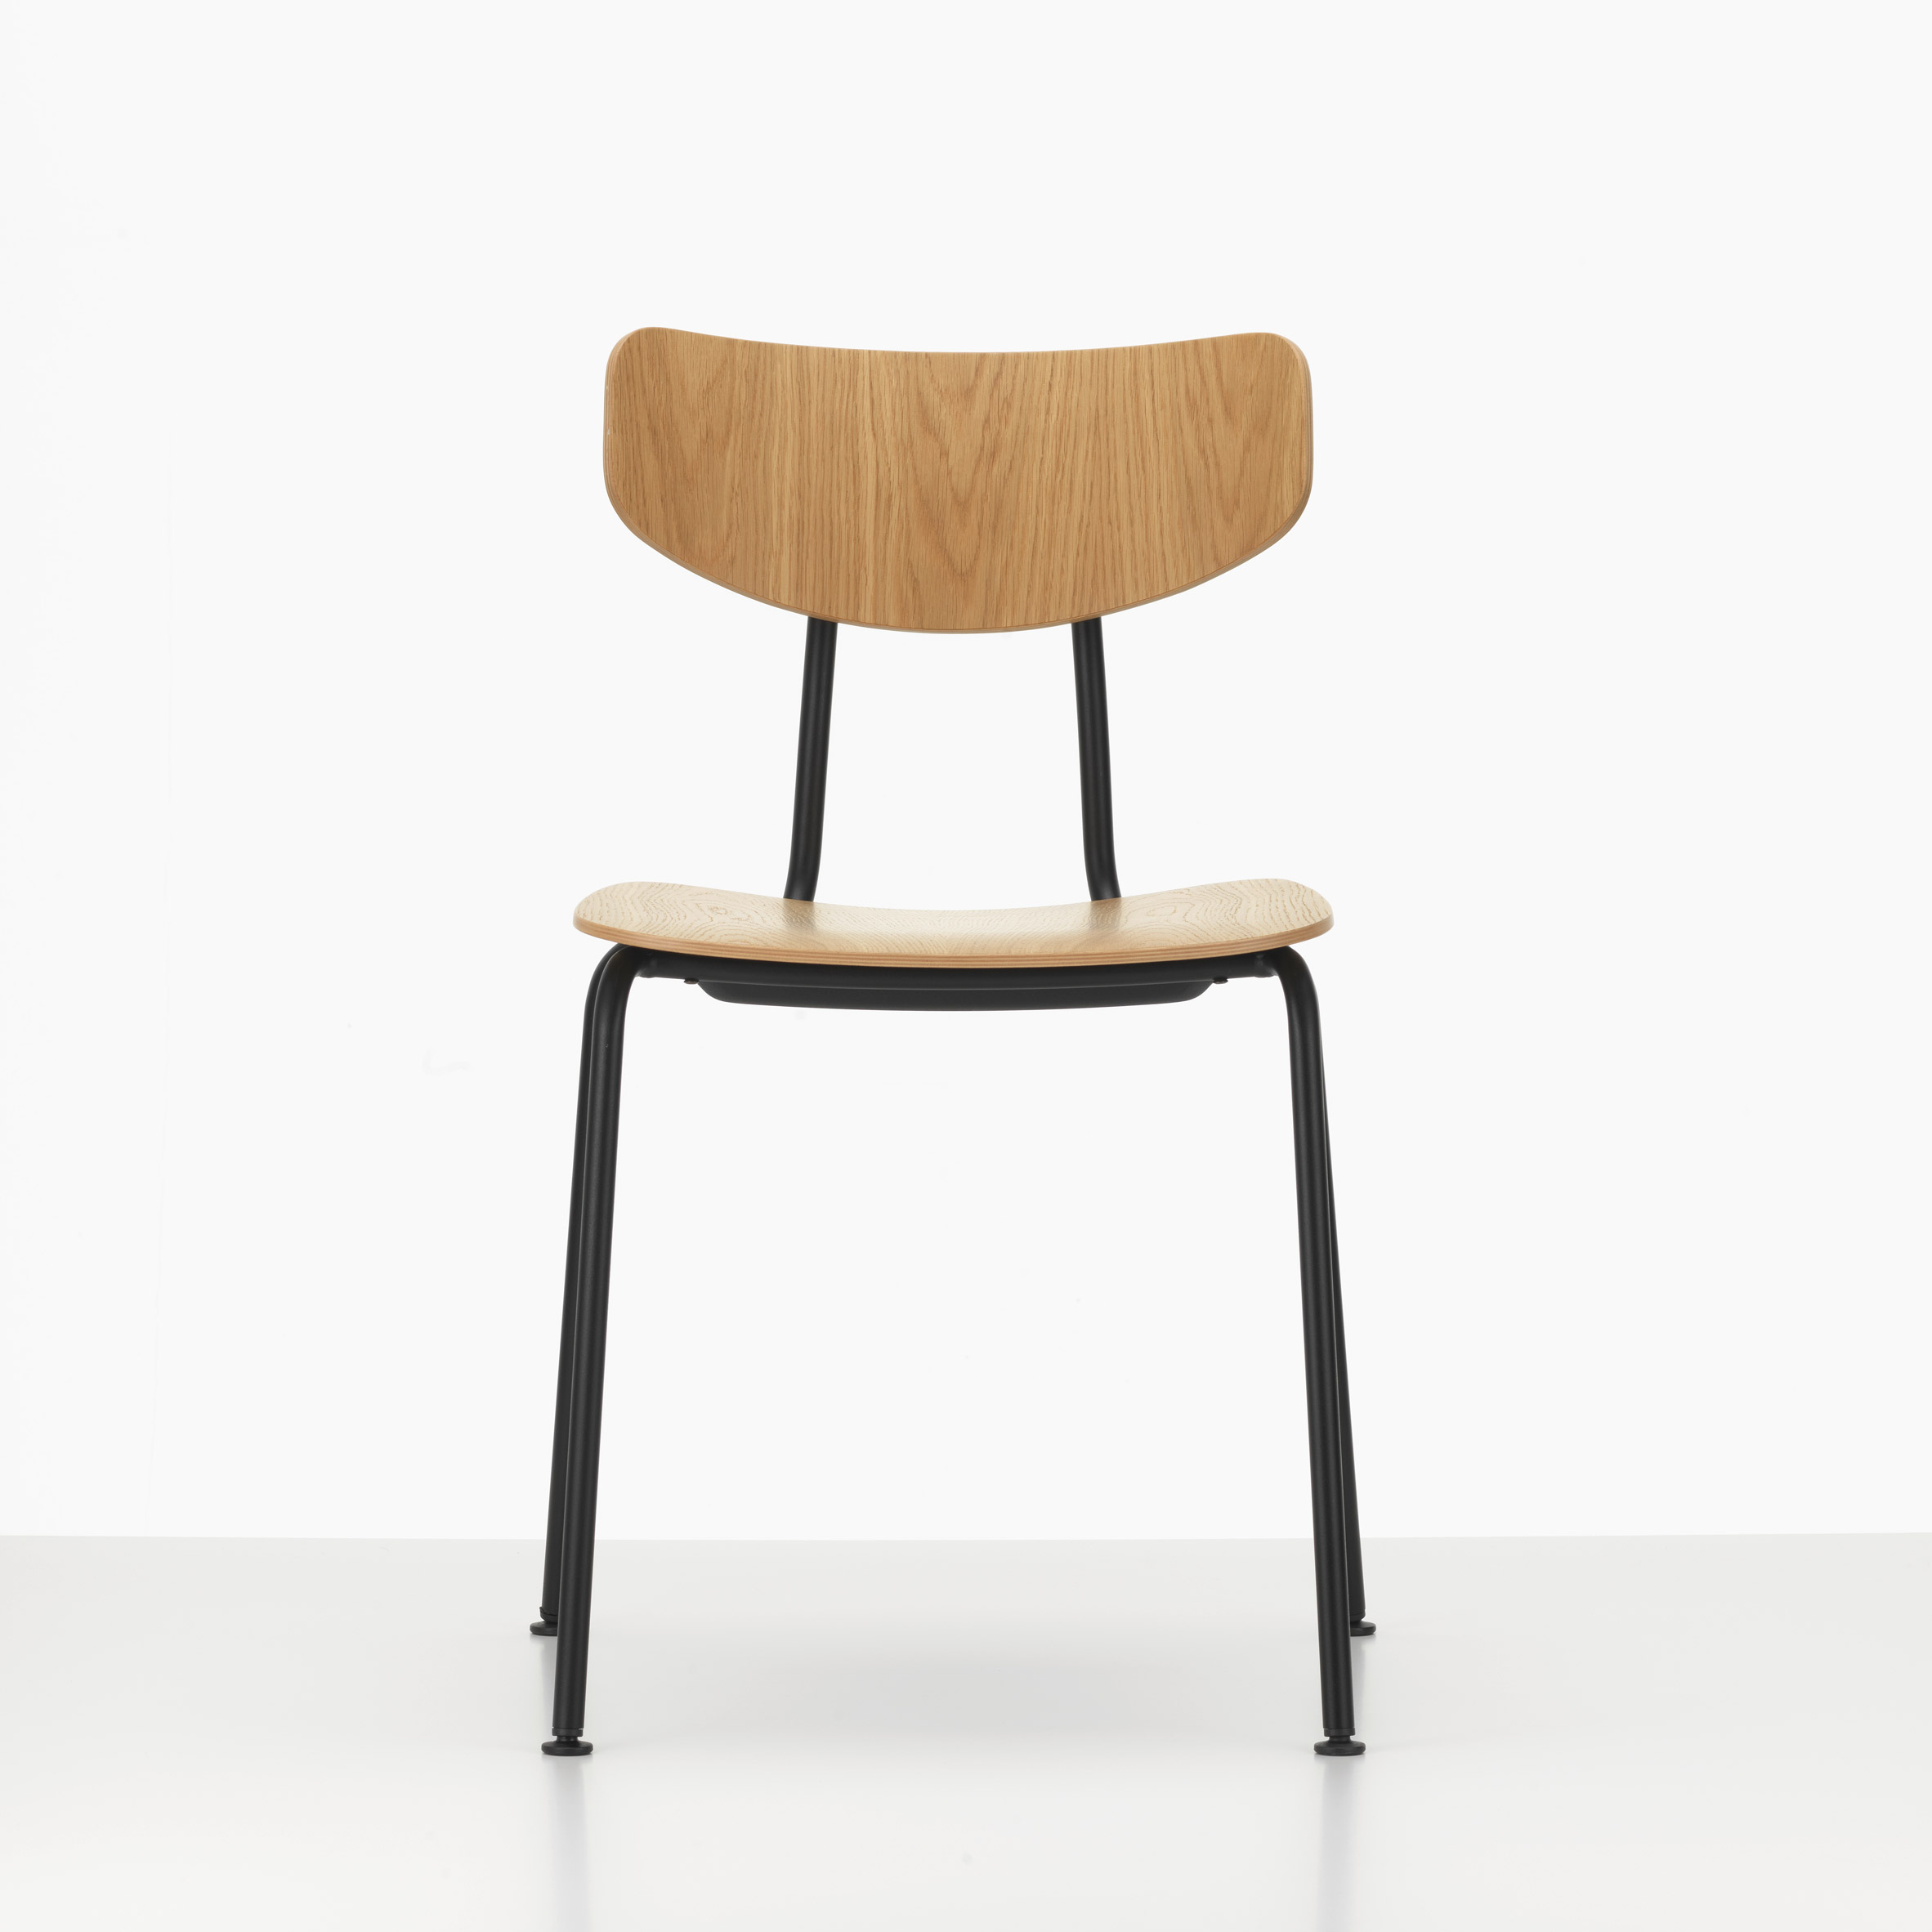 Moca chair by Vitra